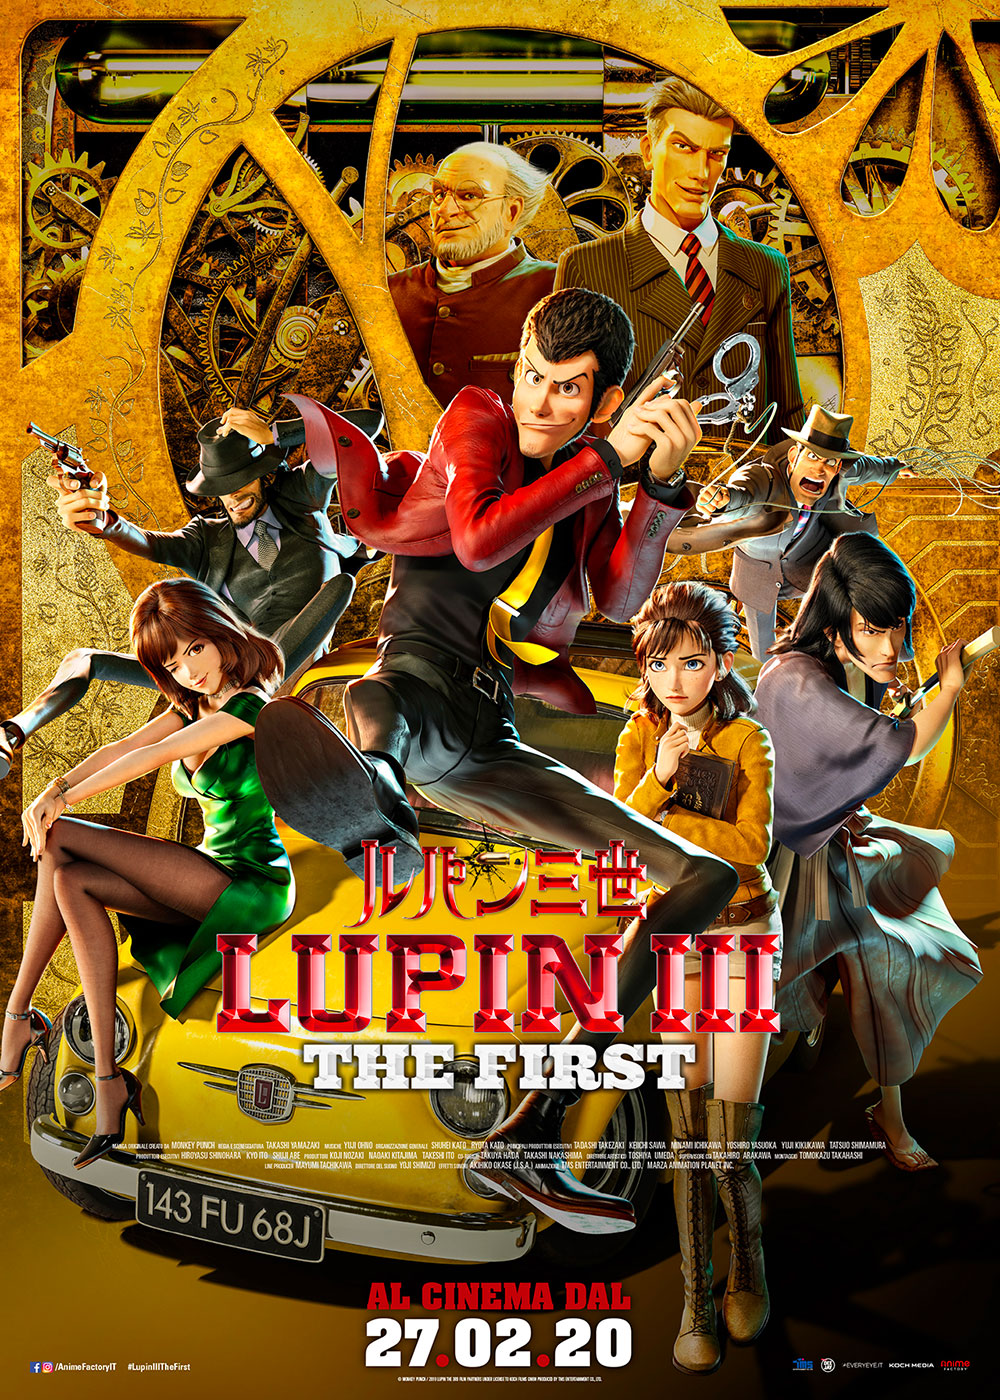 Lupin III - The First, il poster italiano del film